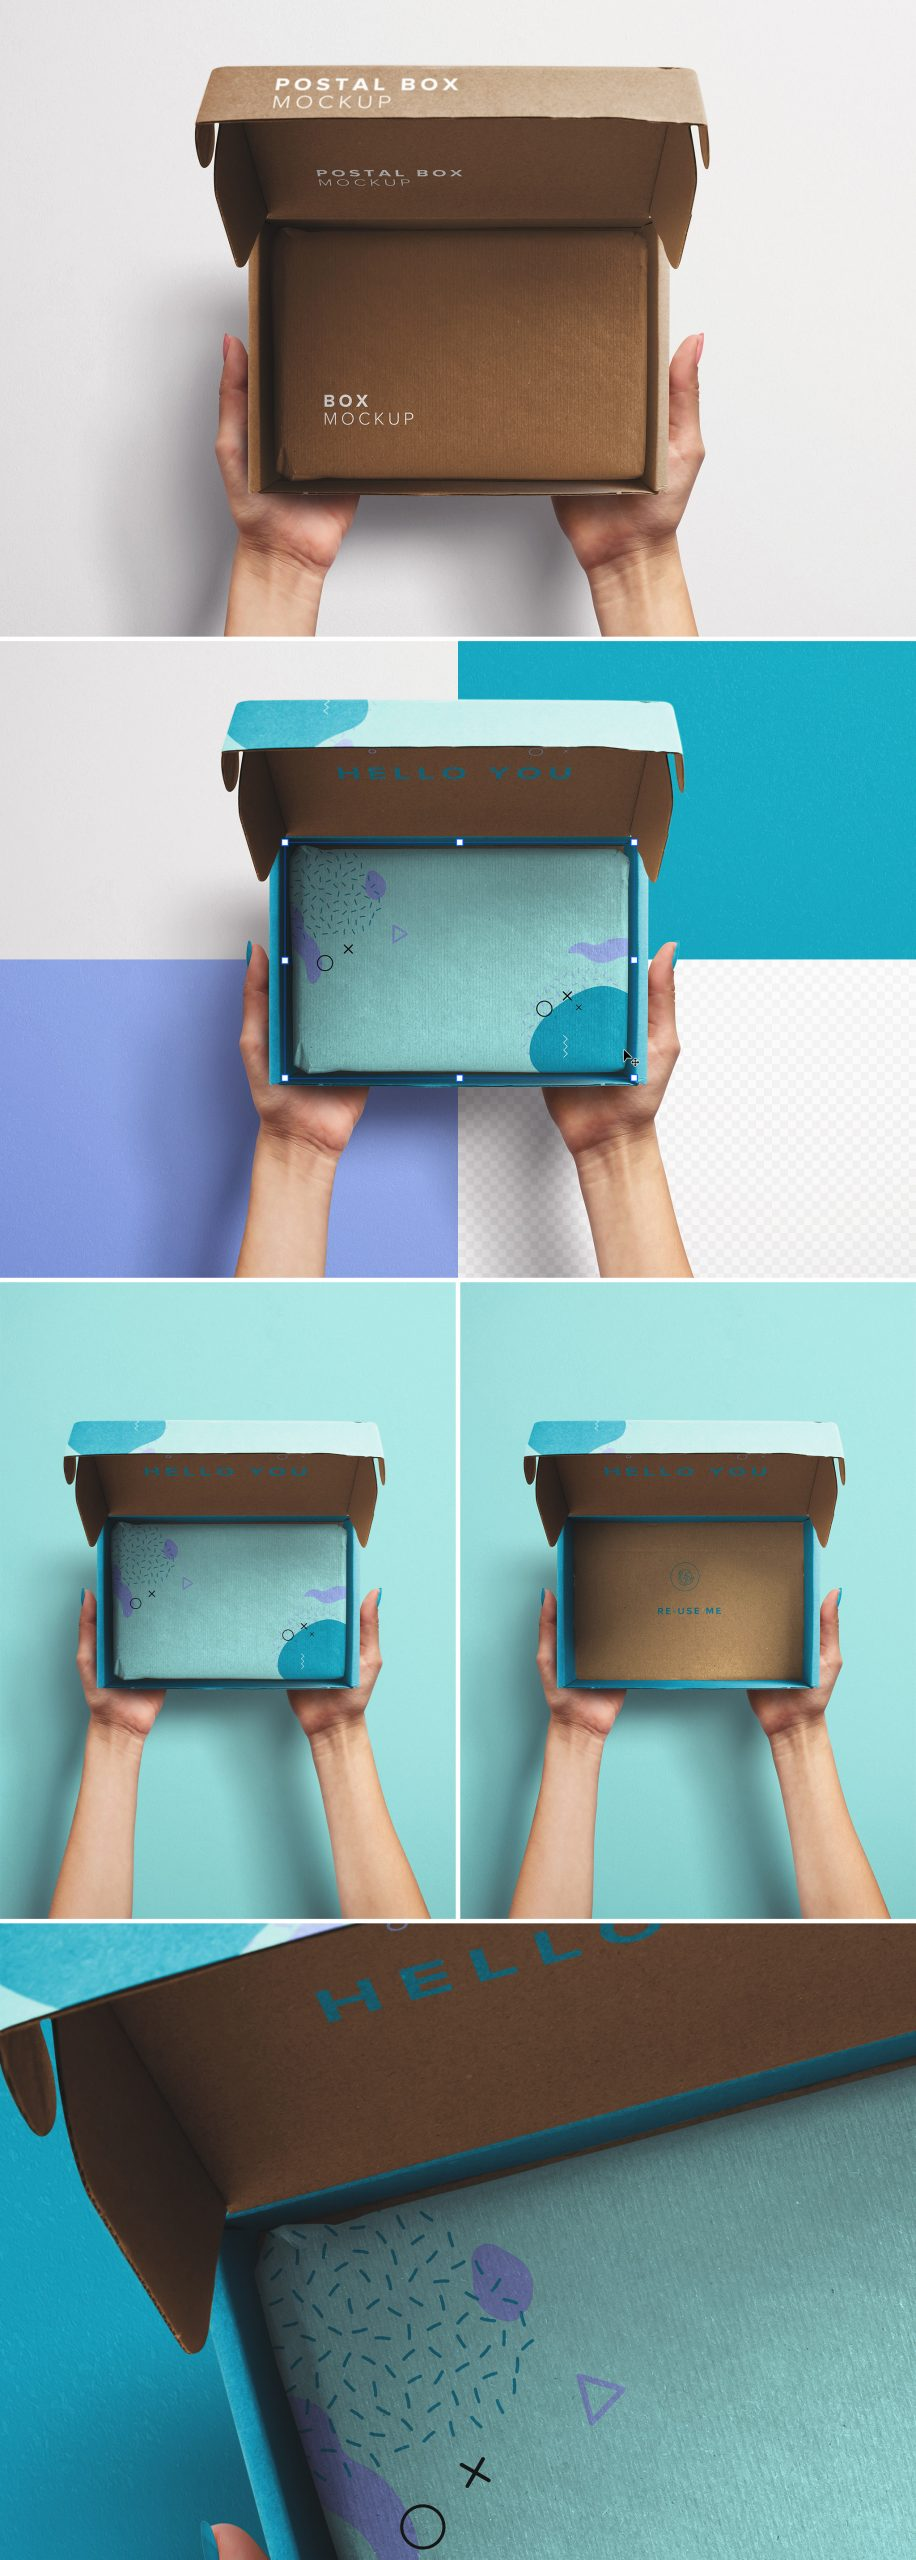 Hands Holding Opened Postal Box Mockup preview scaled